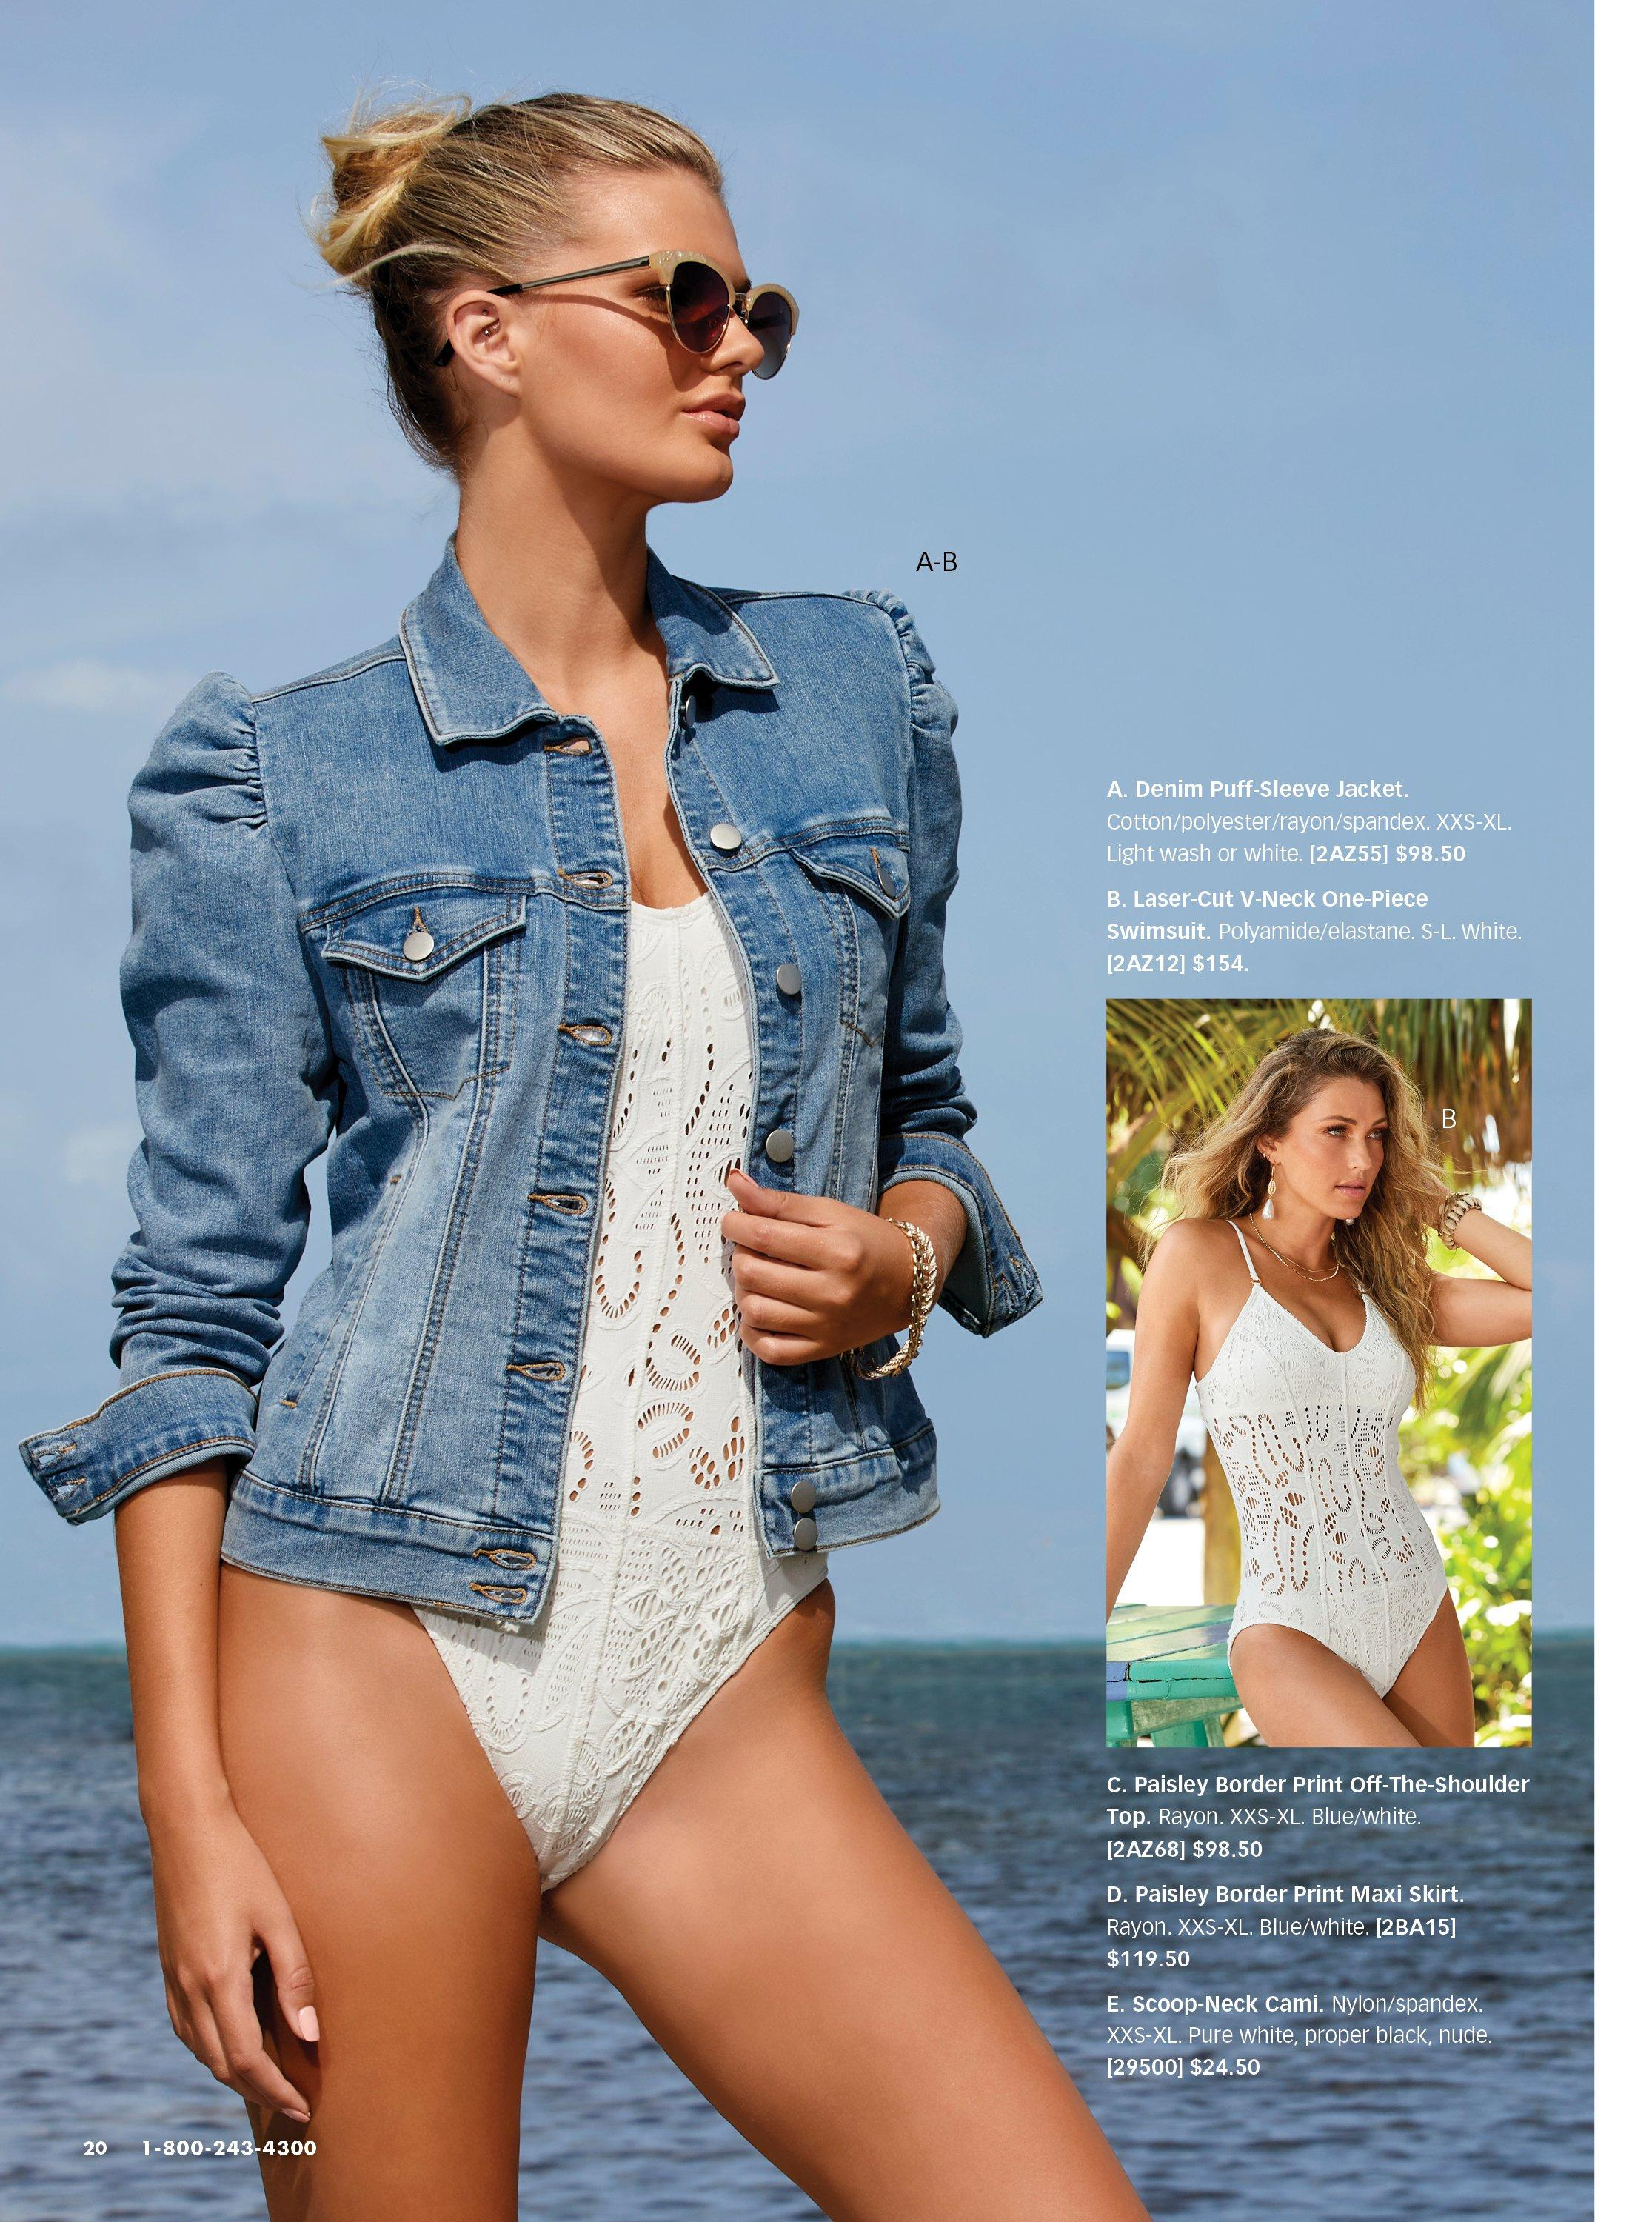 left model wearing a puff-sleeve denim jacket over a white lace one-piece swimsuit. right model wearing a white lace one piece swimsuit.